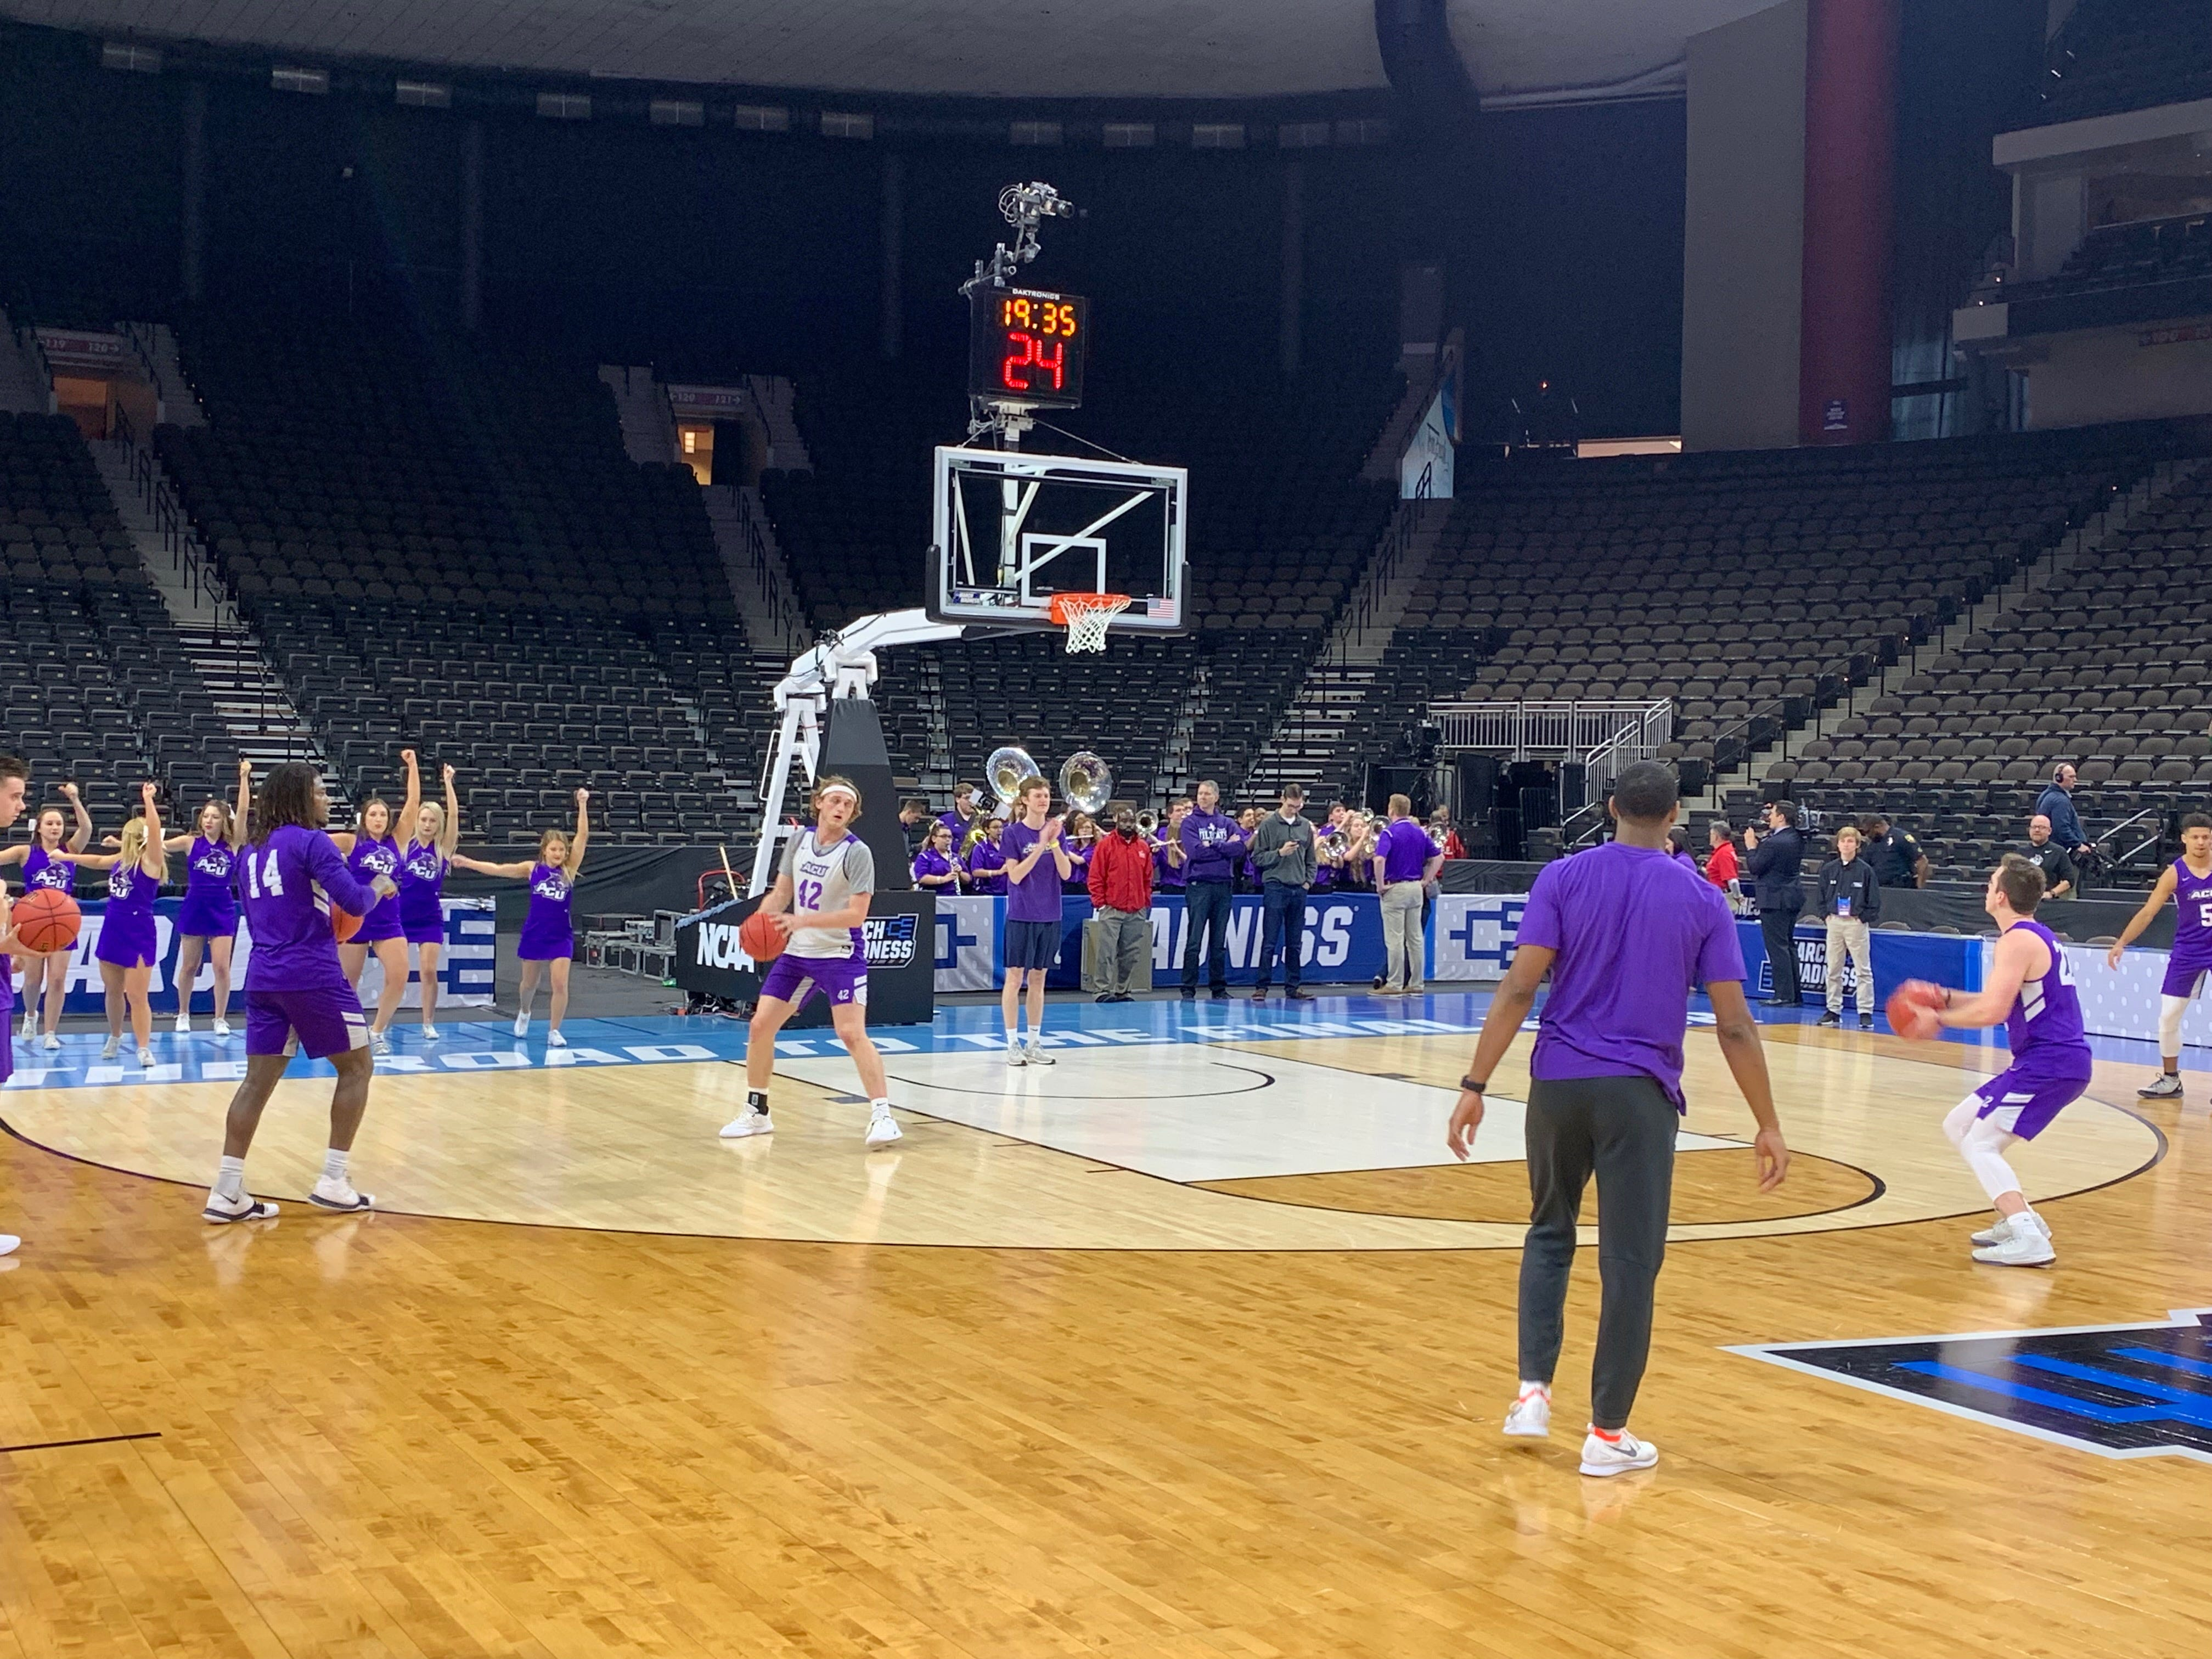 The ACU men's basketball team practices along with the cheerleaders and band at VyStar Veterans Memorial Arena in Jacksonville on Wednesday, March 20. ACU plays Kentucky in the NCAA Tournament first round on Thursday night.